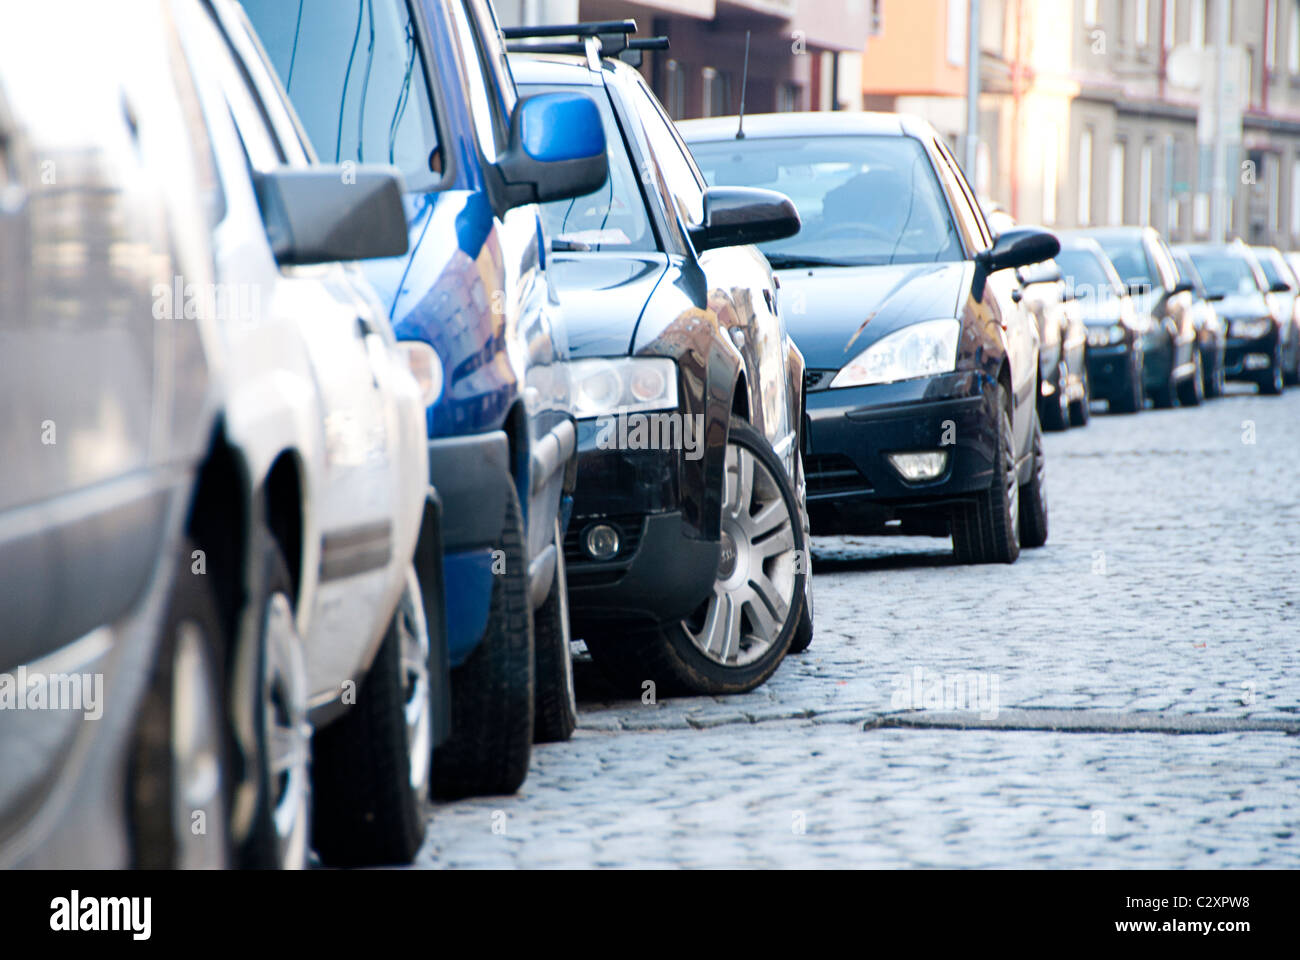 row of cars parked on city street - Stock Image